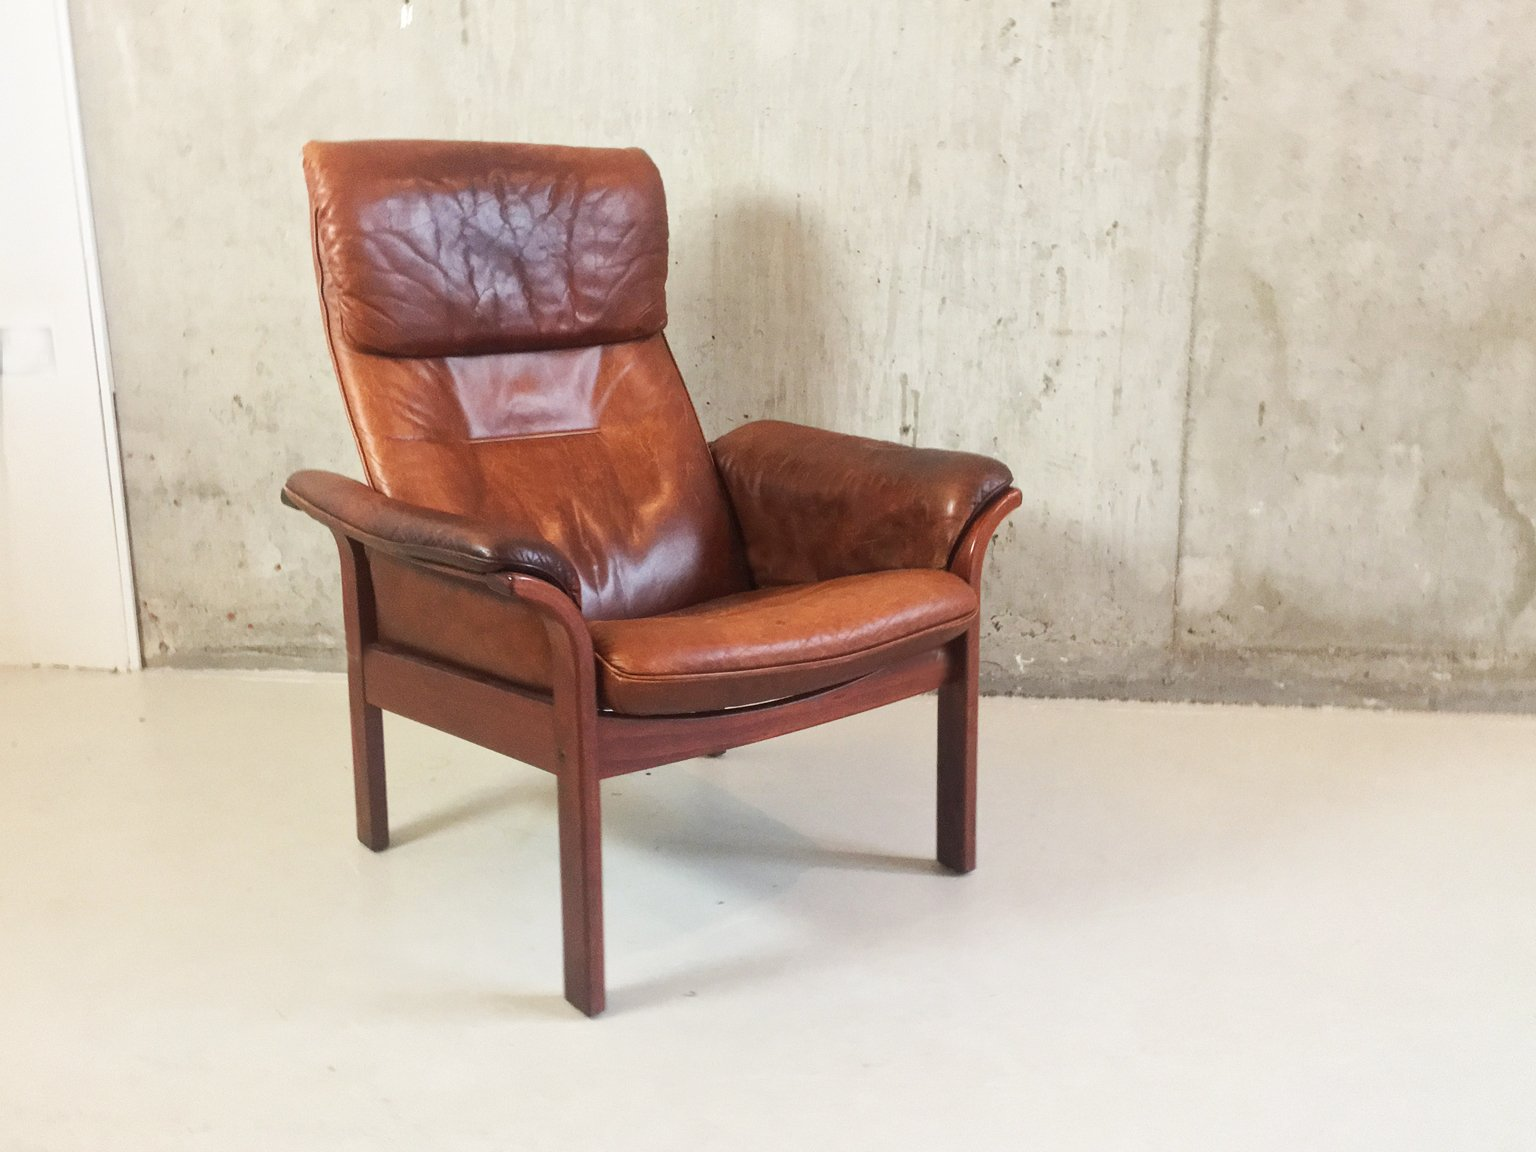 mid century brown leather reclining armchair by g m bel sweden 1960s for sale at pamono. Black Bedroom Furniture Sets. Home Design Ideas